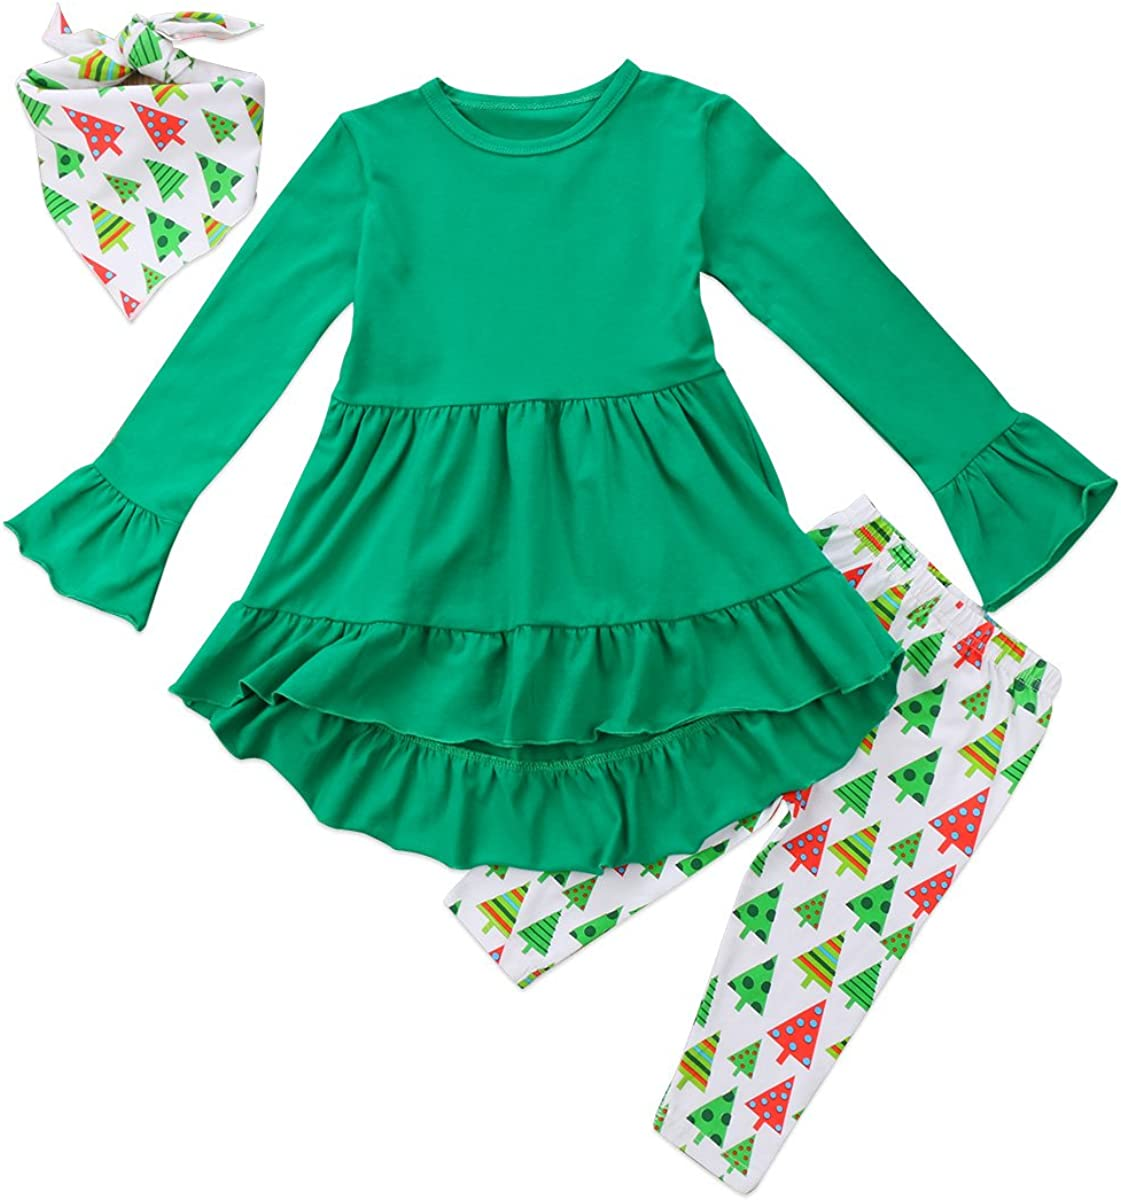 Outlet sale feature Toddler Girl Clothes Ruffles Irregular Tops+Long Pant Mini Popular shop is the lowest price challenge Dress